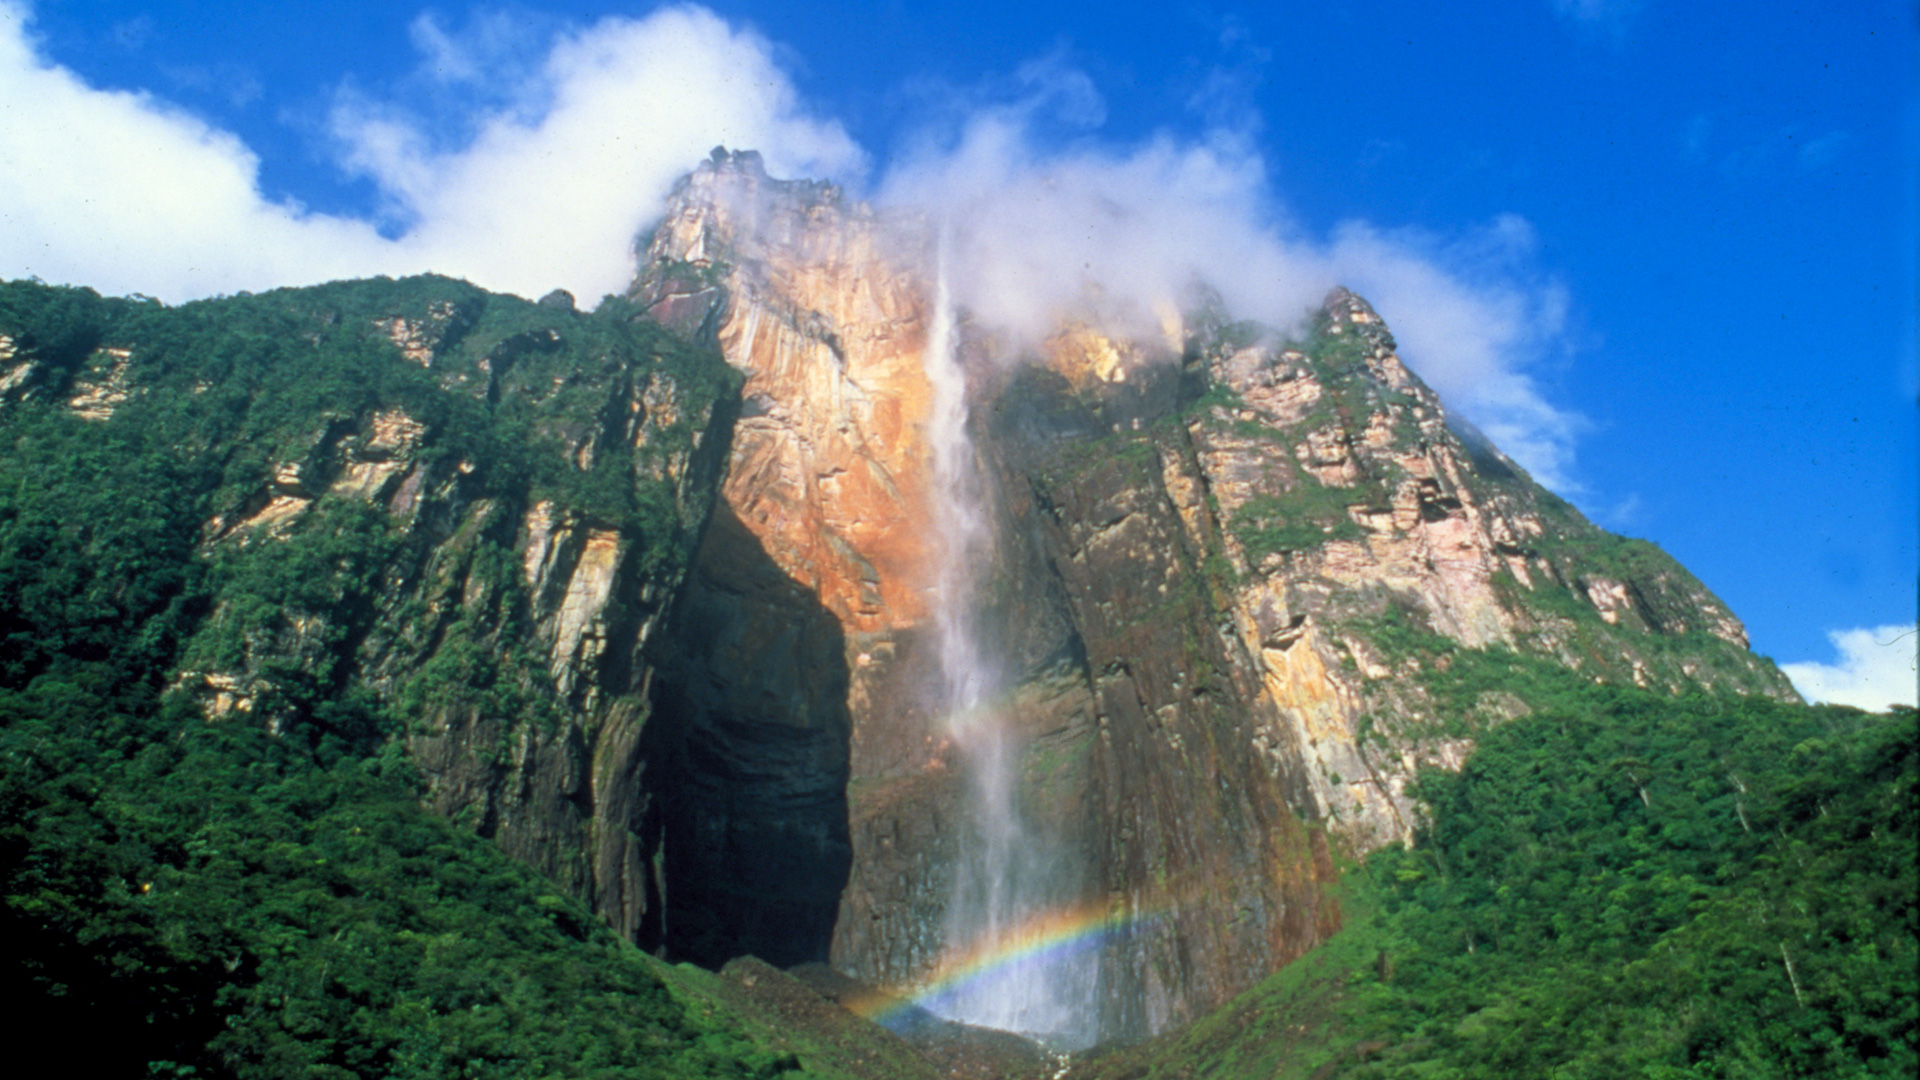 Angel Falls Hd Wallpaper Living Edens The Lost World About Nature Pbs